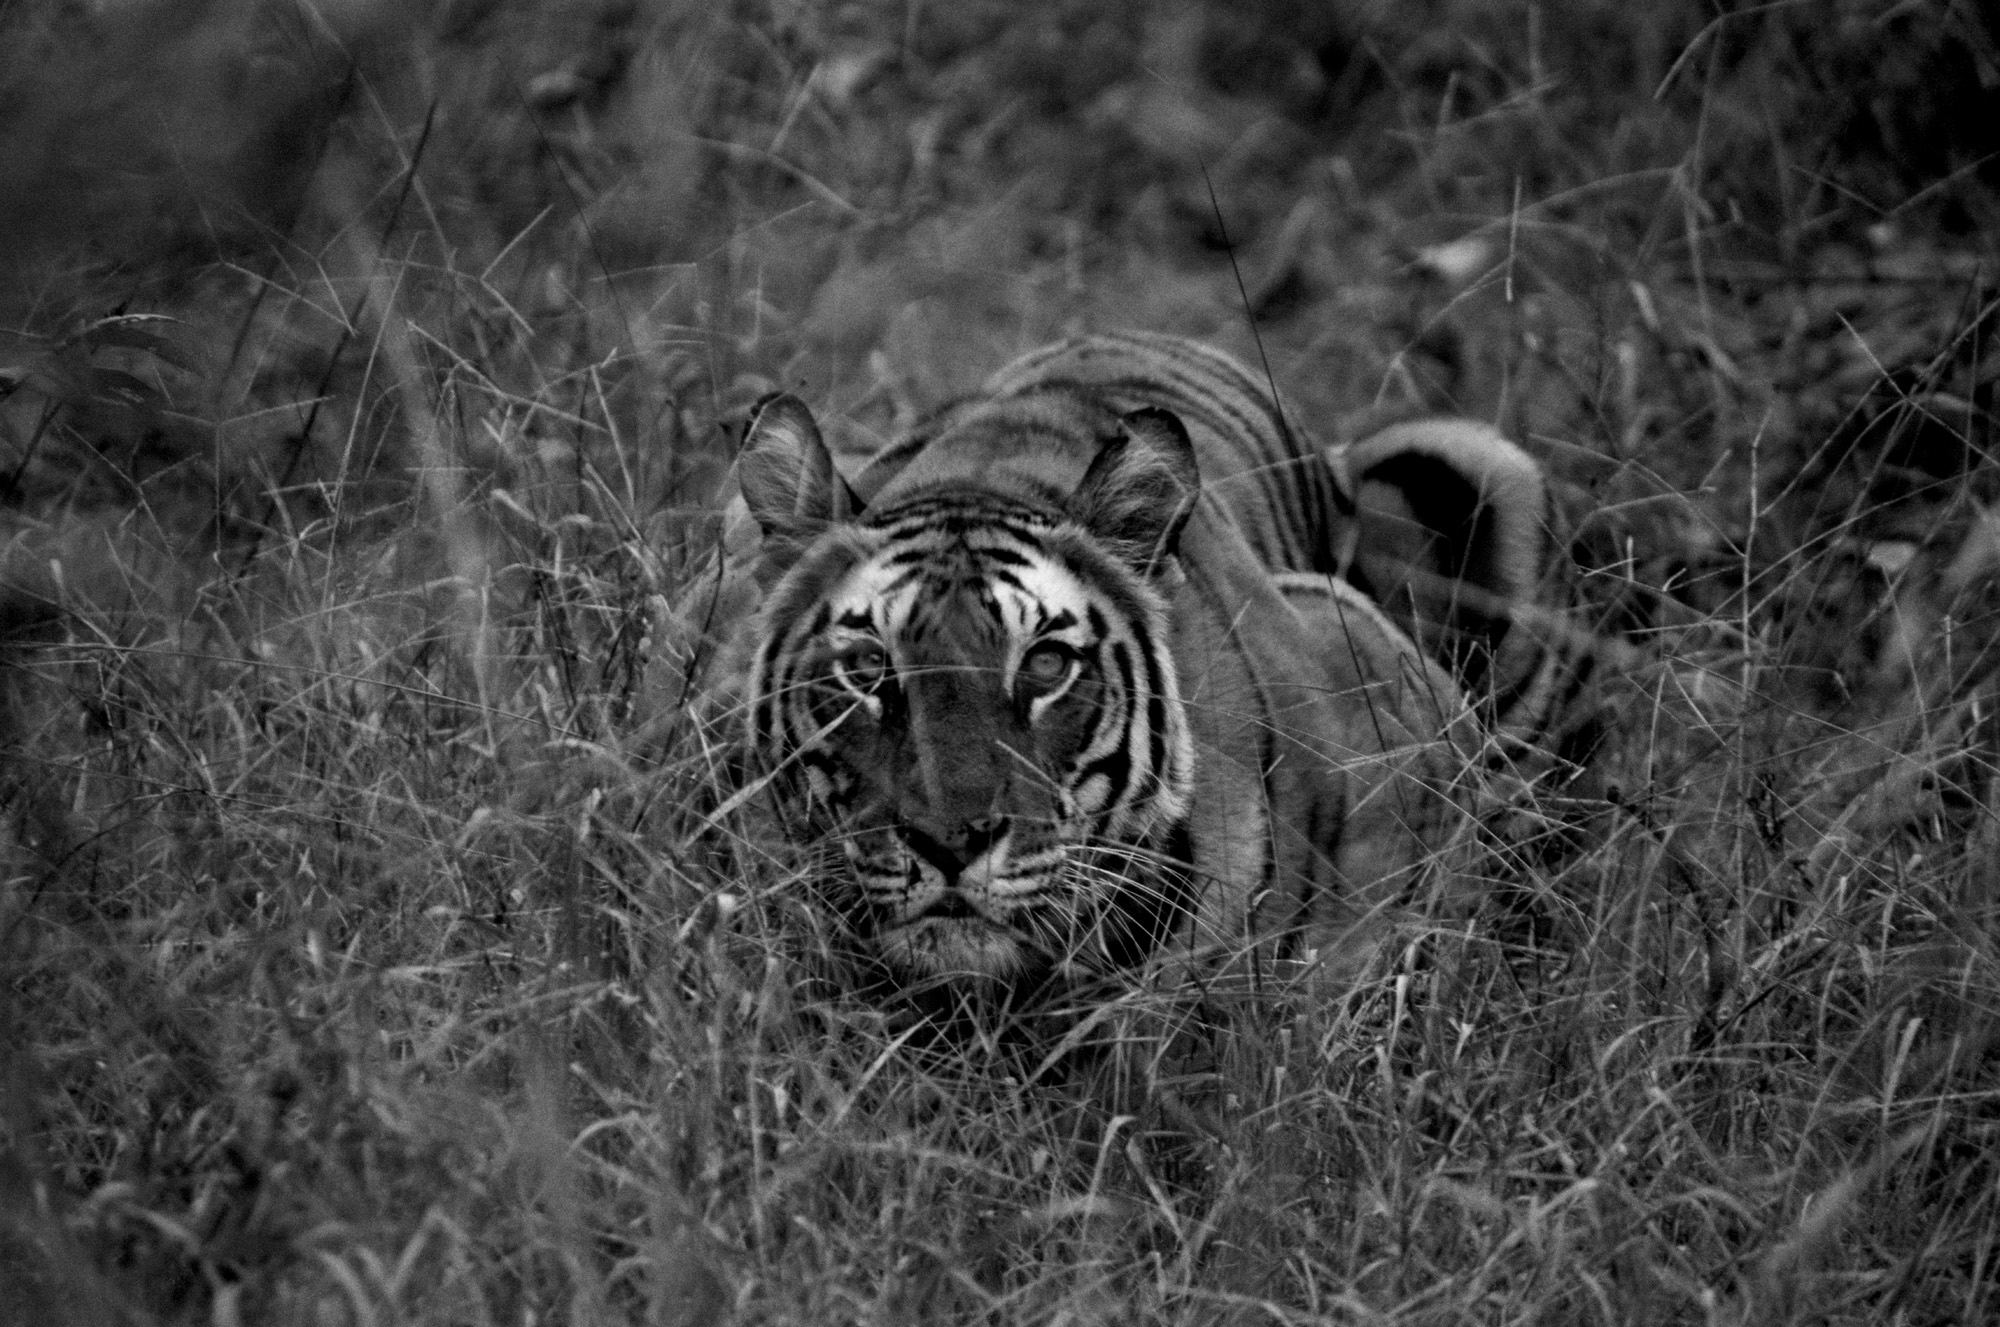 Speaking In Defense Of a Proud and Dying Breed—The Tiger